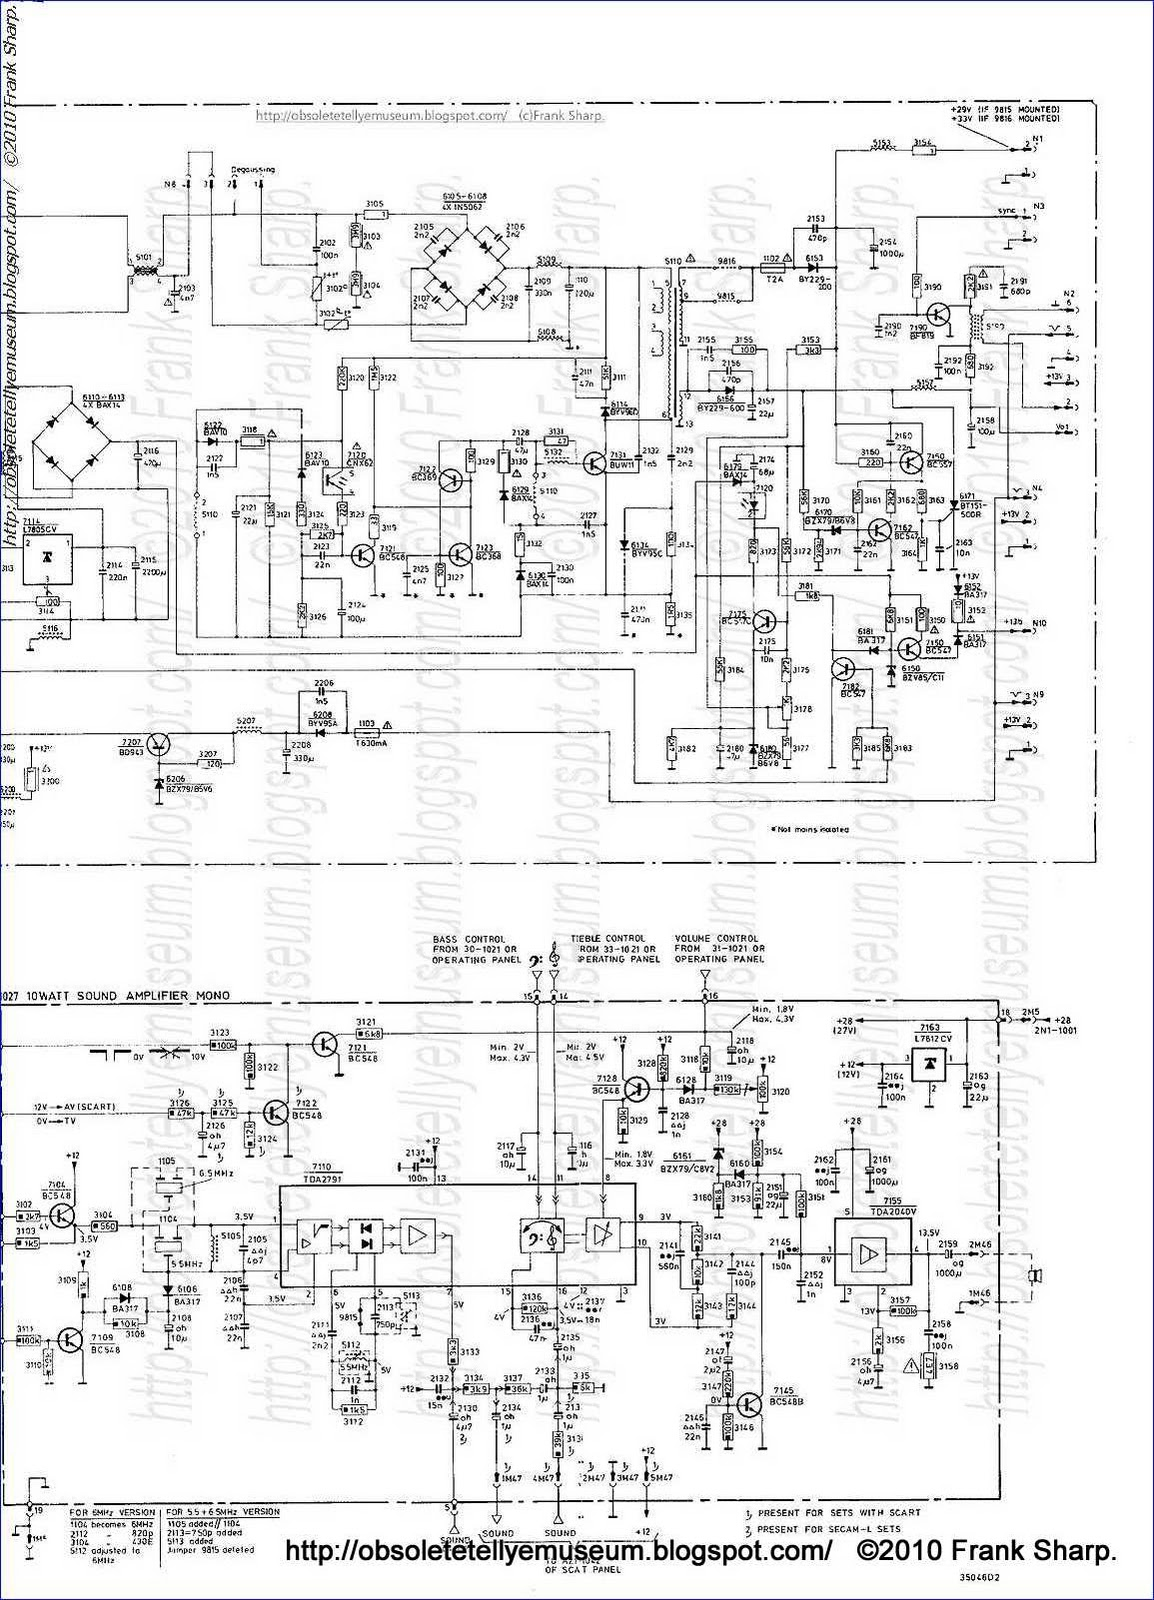 Obsolete Technology Tellye Philips 22cs5250 Tiepolo Chassis K40 Diagrams Besides Hydraulic Press Wiring Diagram Moreover Whirlpool Internal View